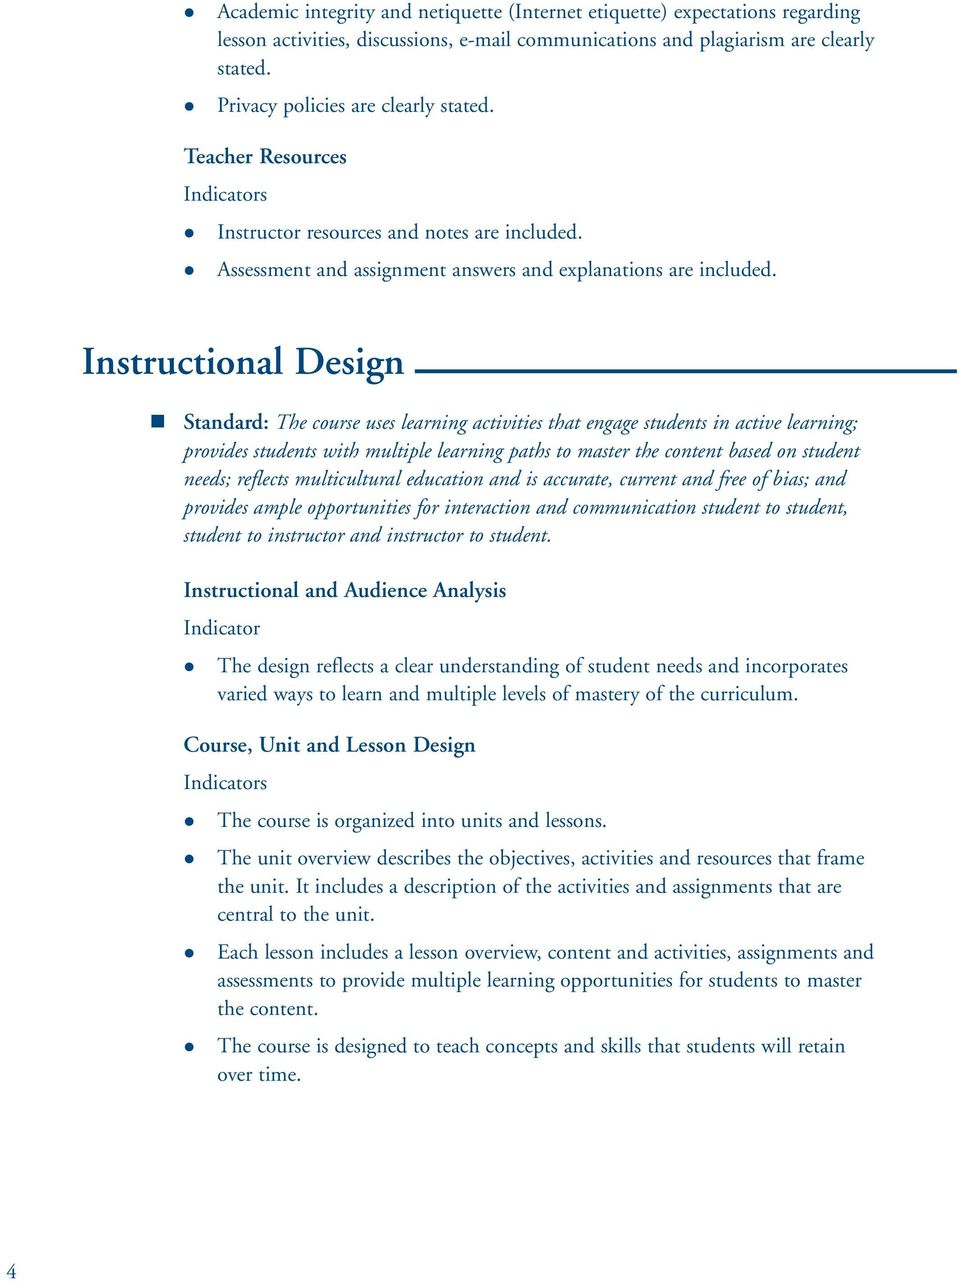 Instructional Design Standard: The course uses learning activities that engage students in active learning; provides students with multiple learning paths to master the content based on student